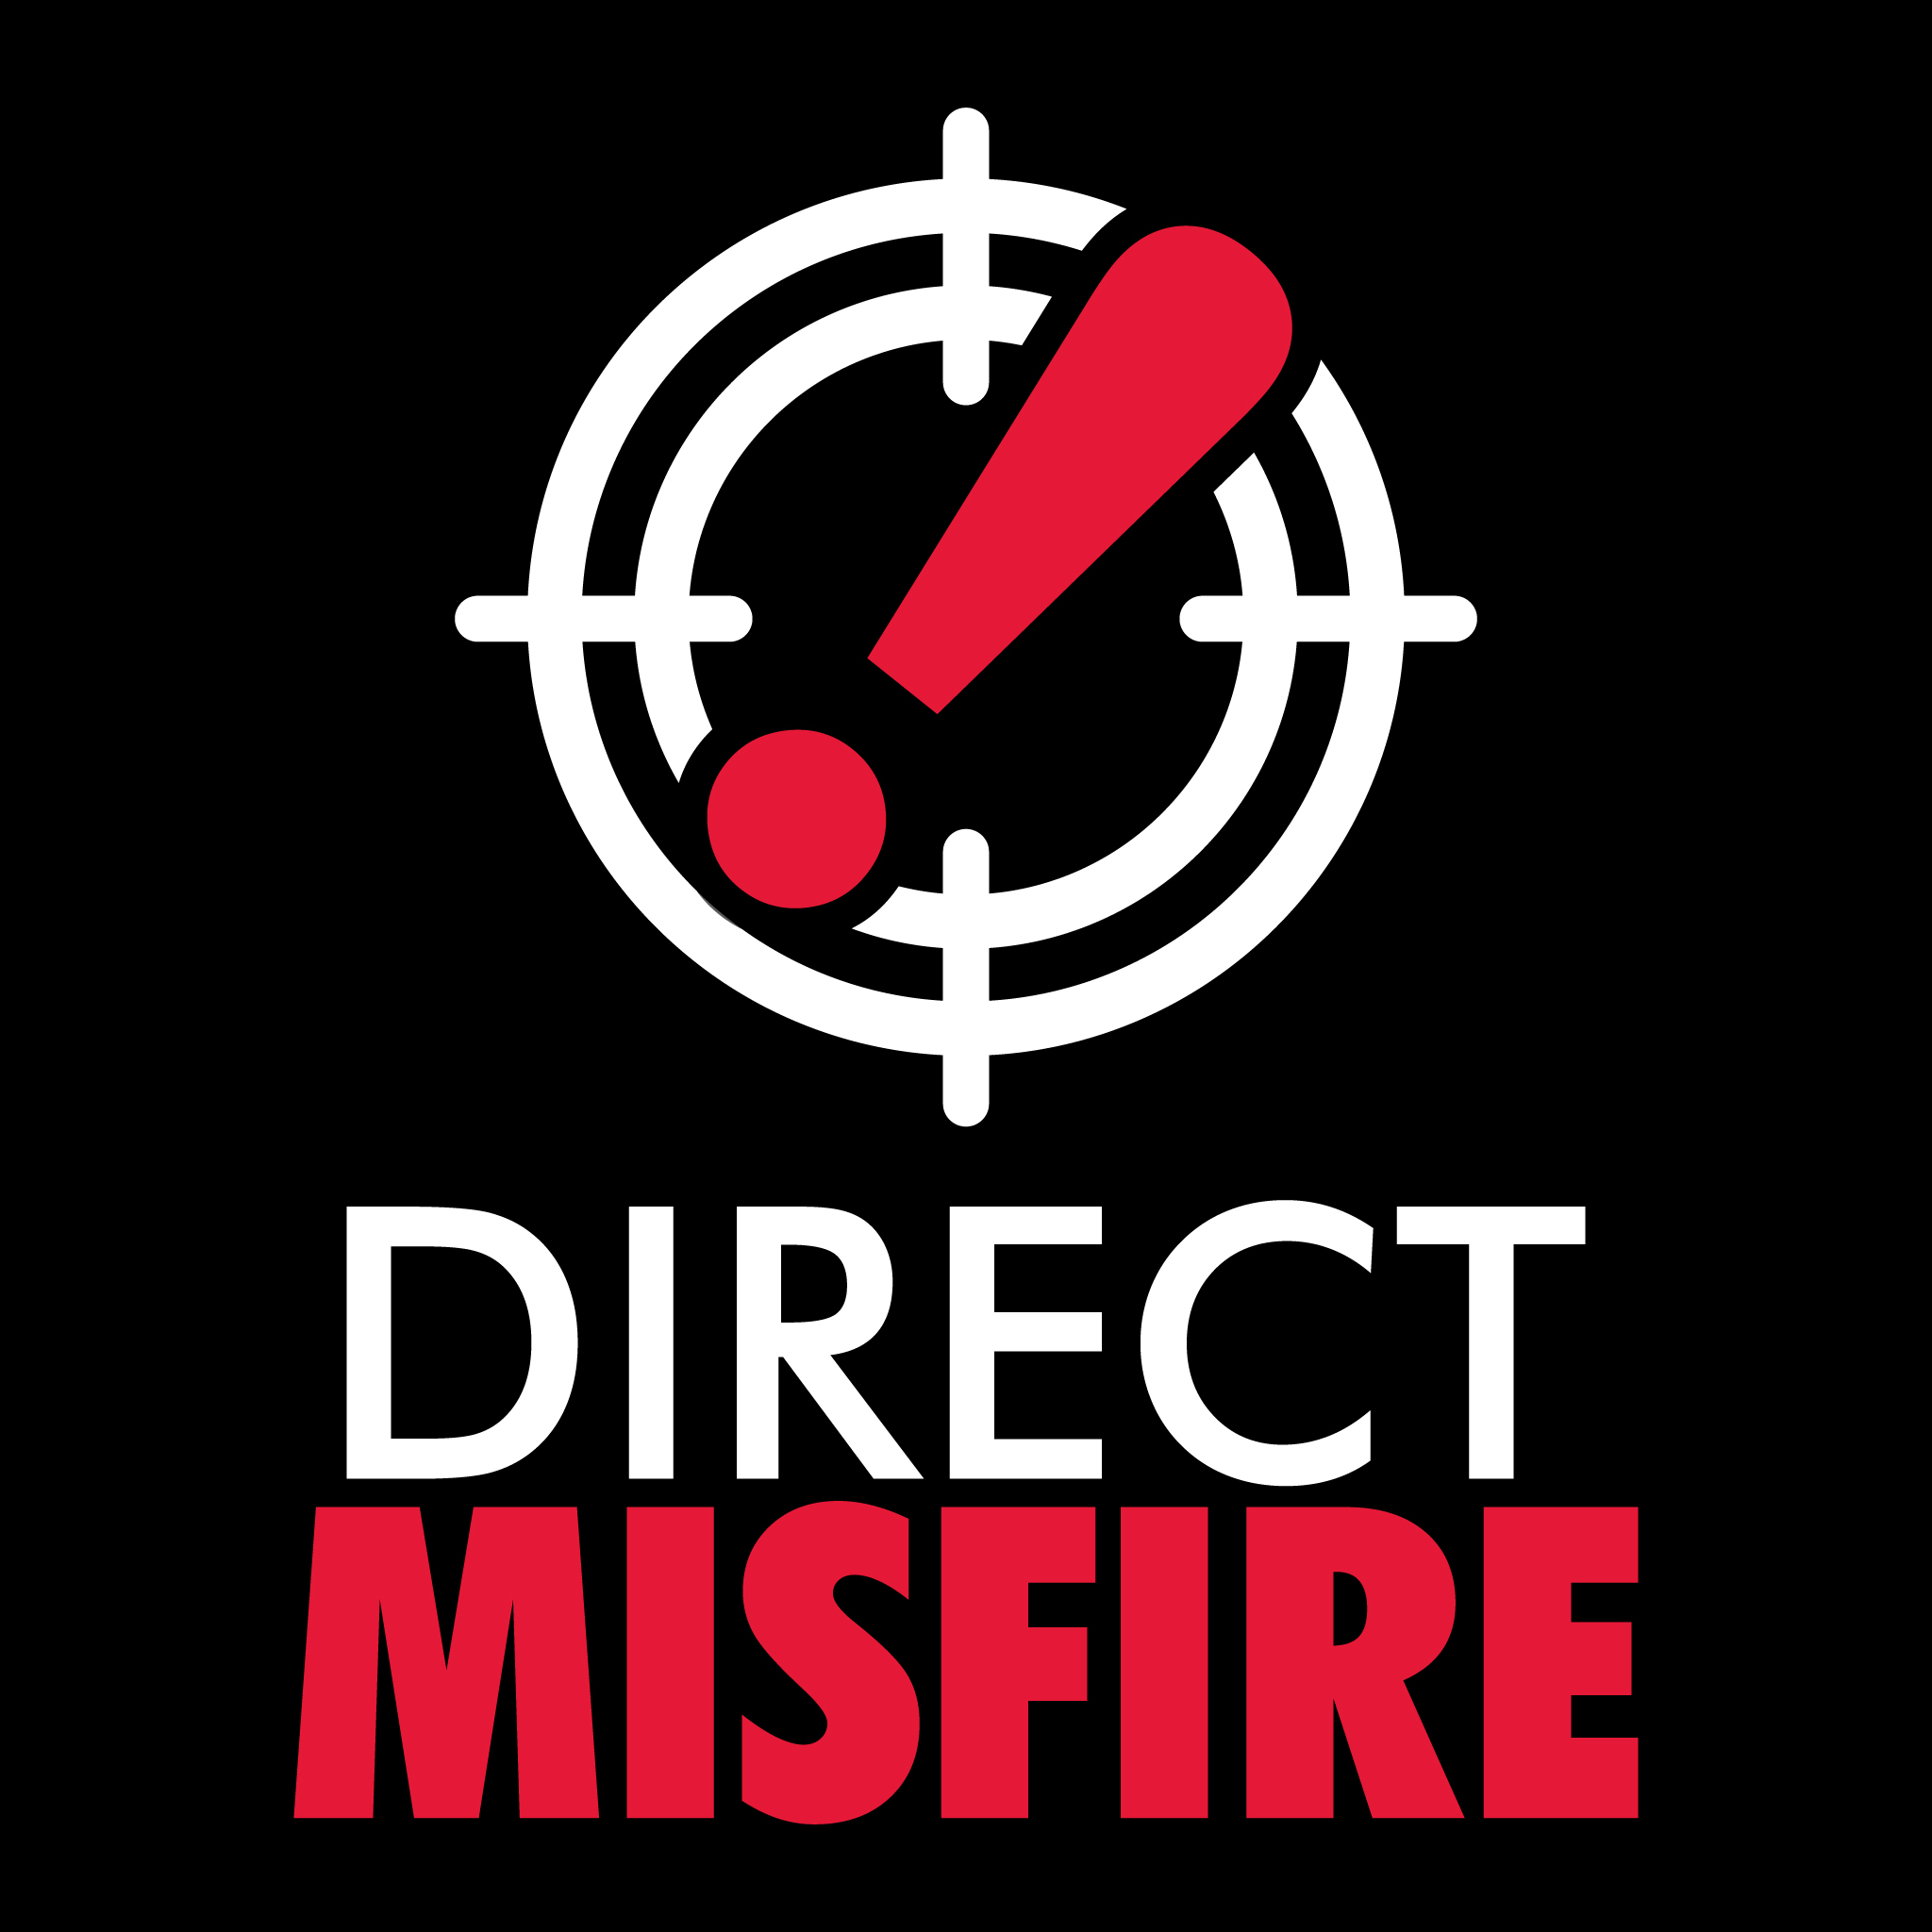 Direct Misfire